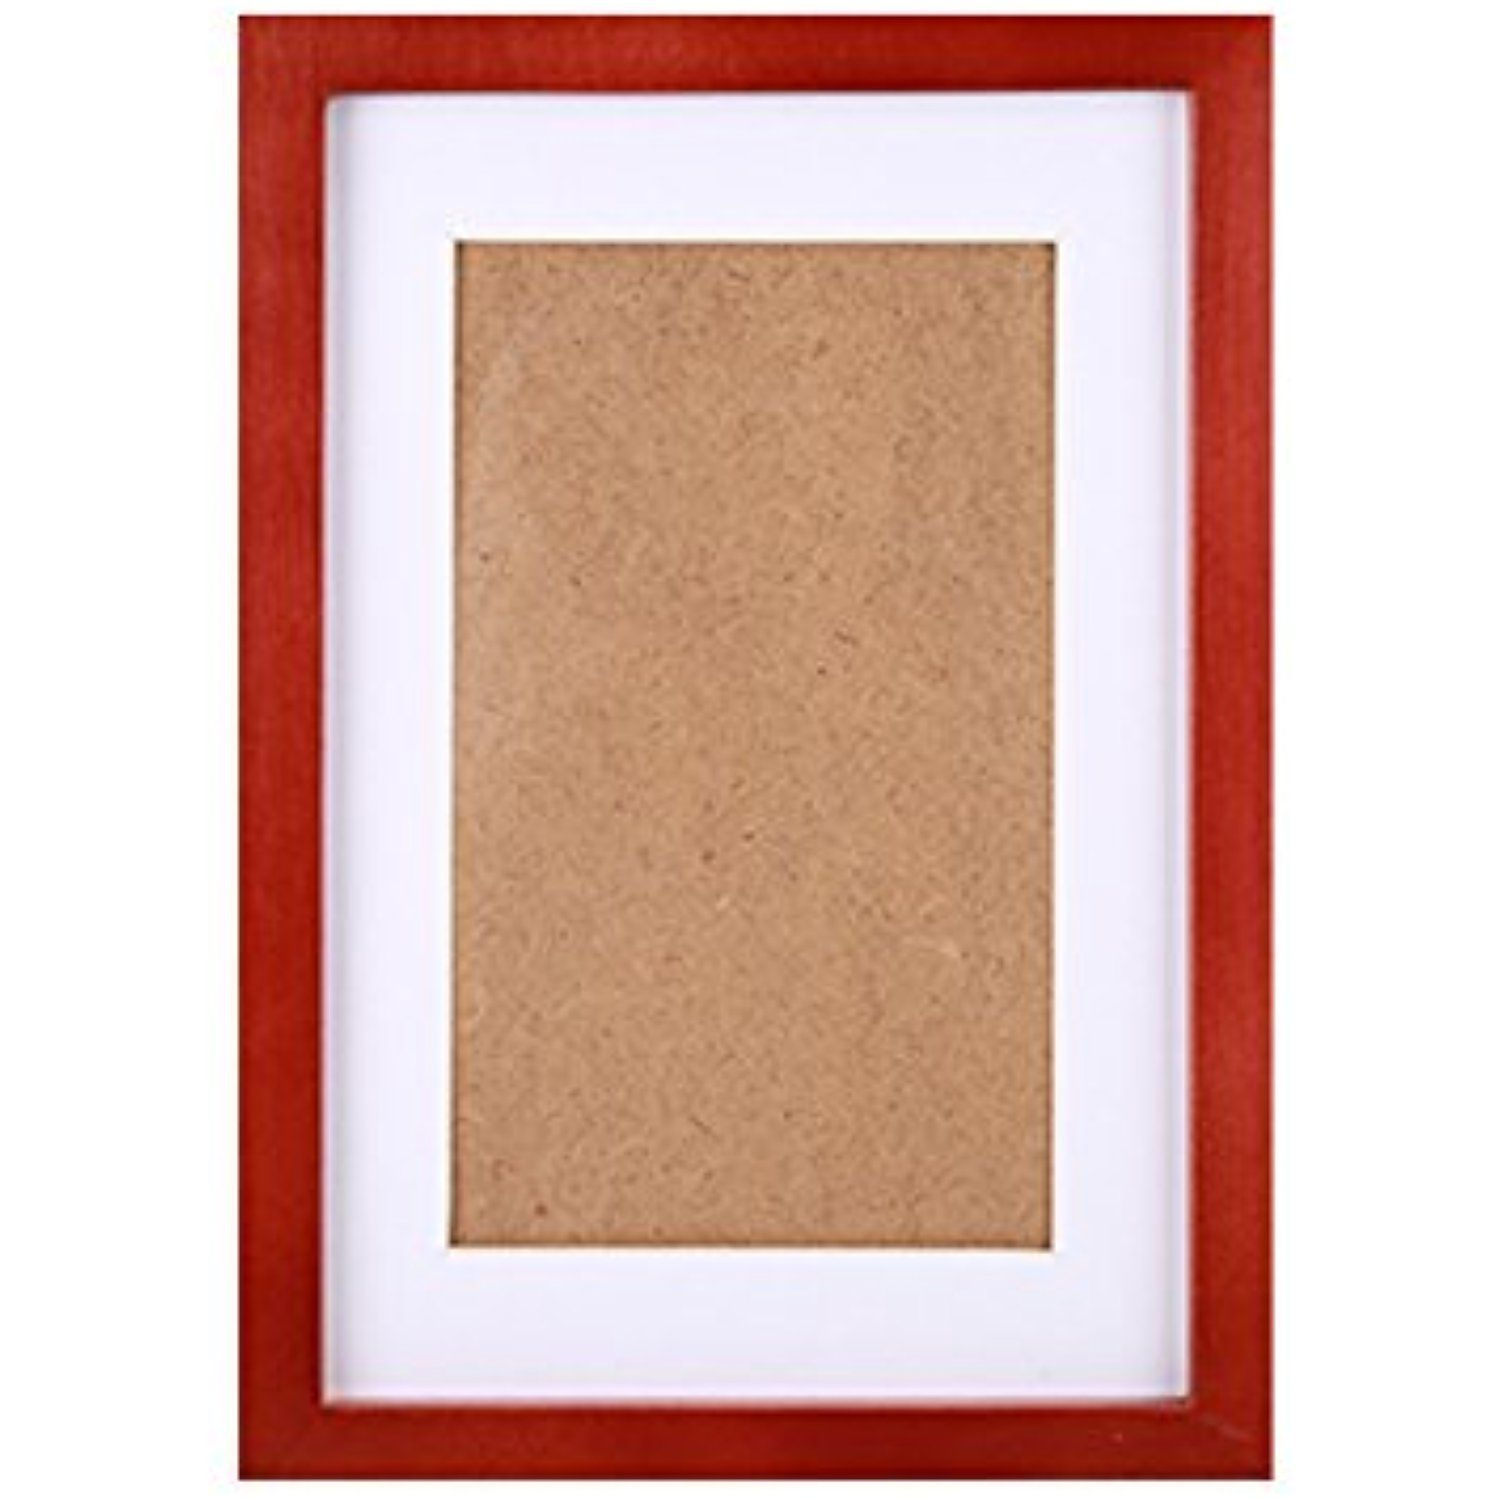 Fastnova 12x15 Inch Cherry Red Wood Picture Frames Made To Display Picture 8x12 With Mat Or 11x14 Without Mat Picture On Wood Picture Mounting Picture Display